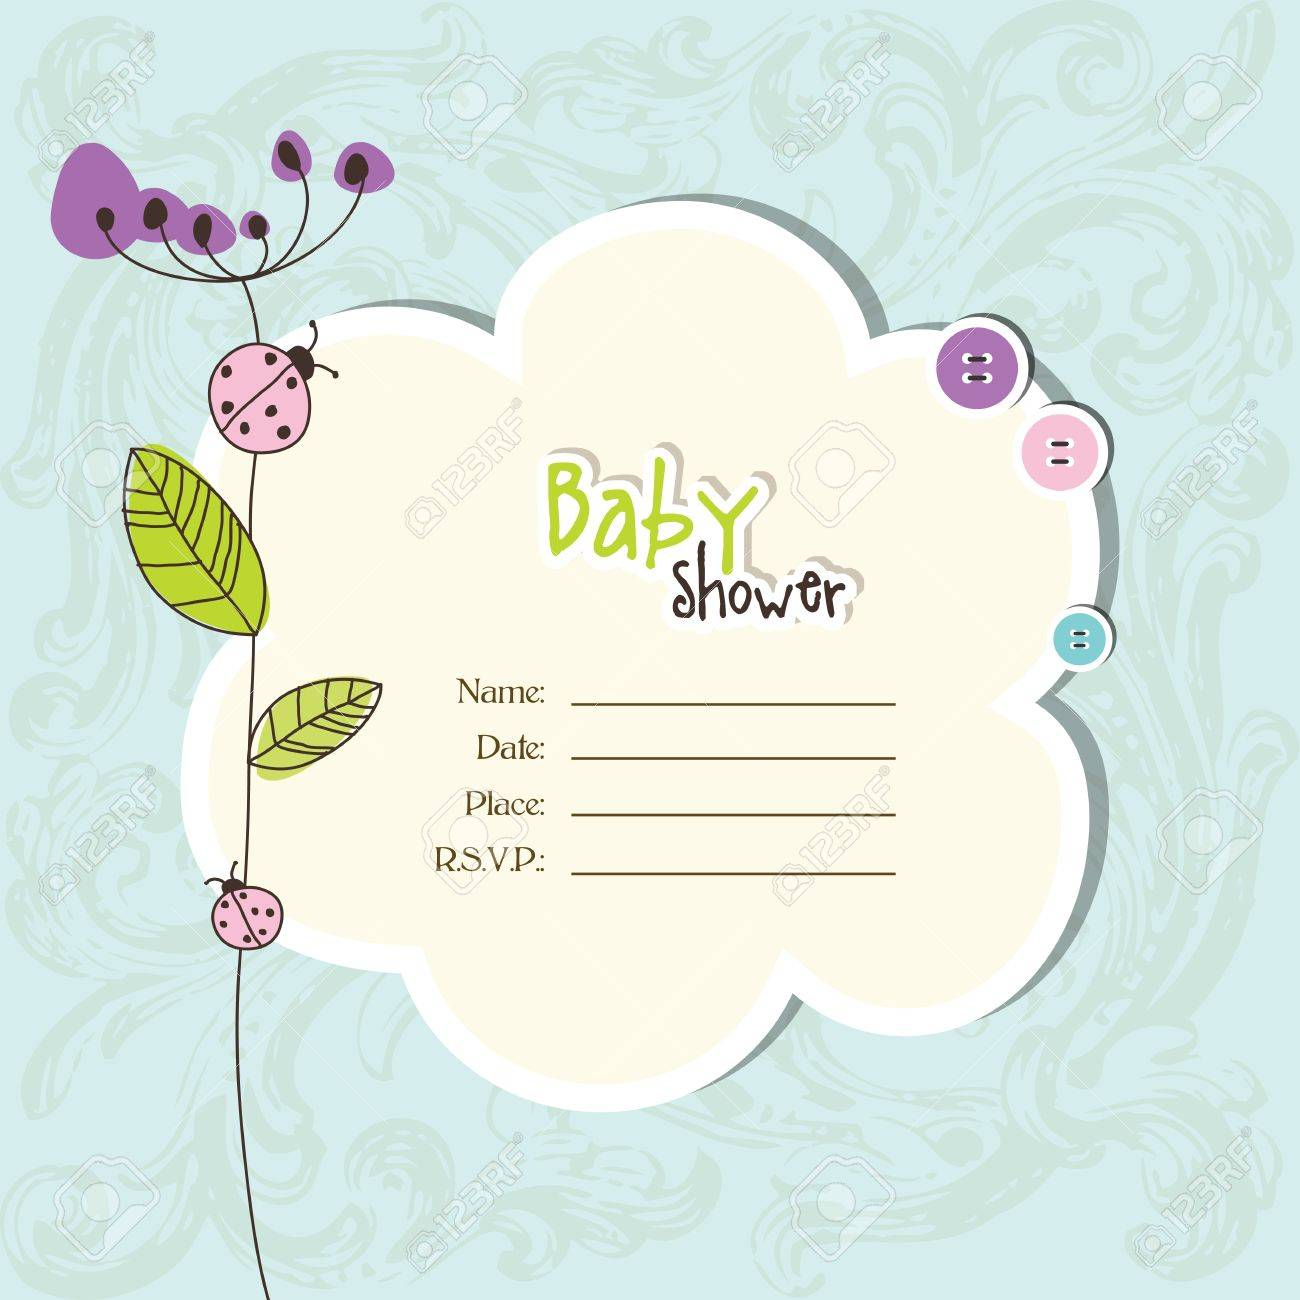 Baby shower invitation with copy space Stock Vector - 17134972